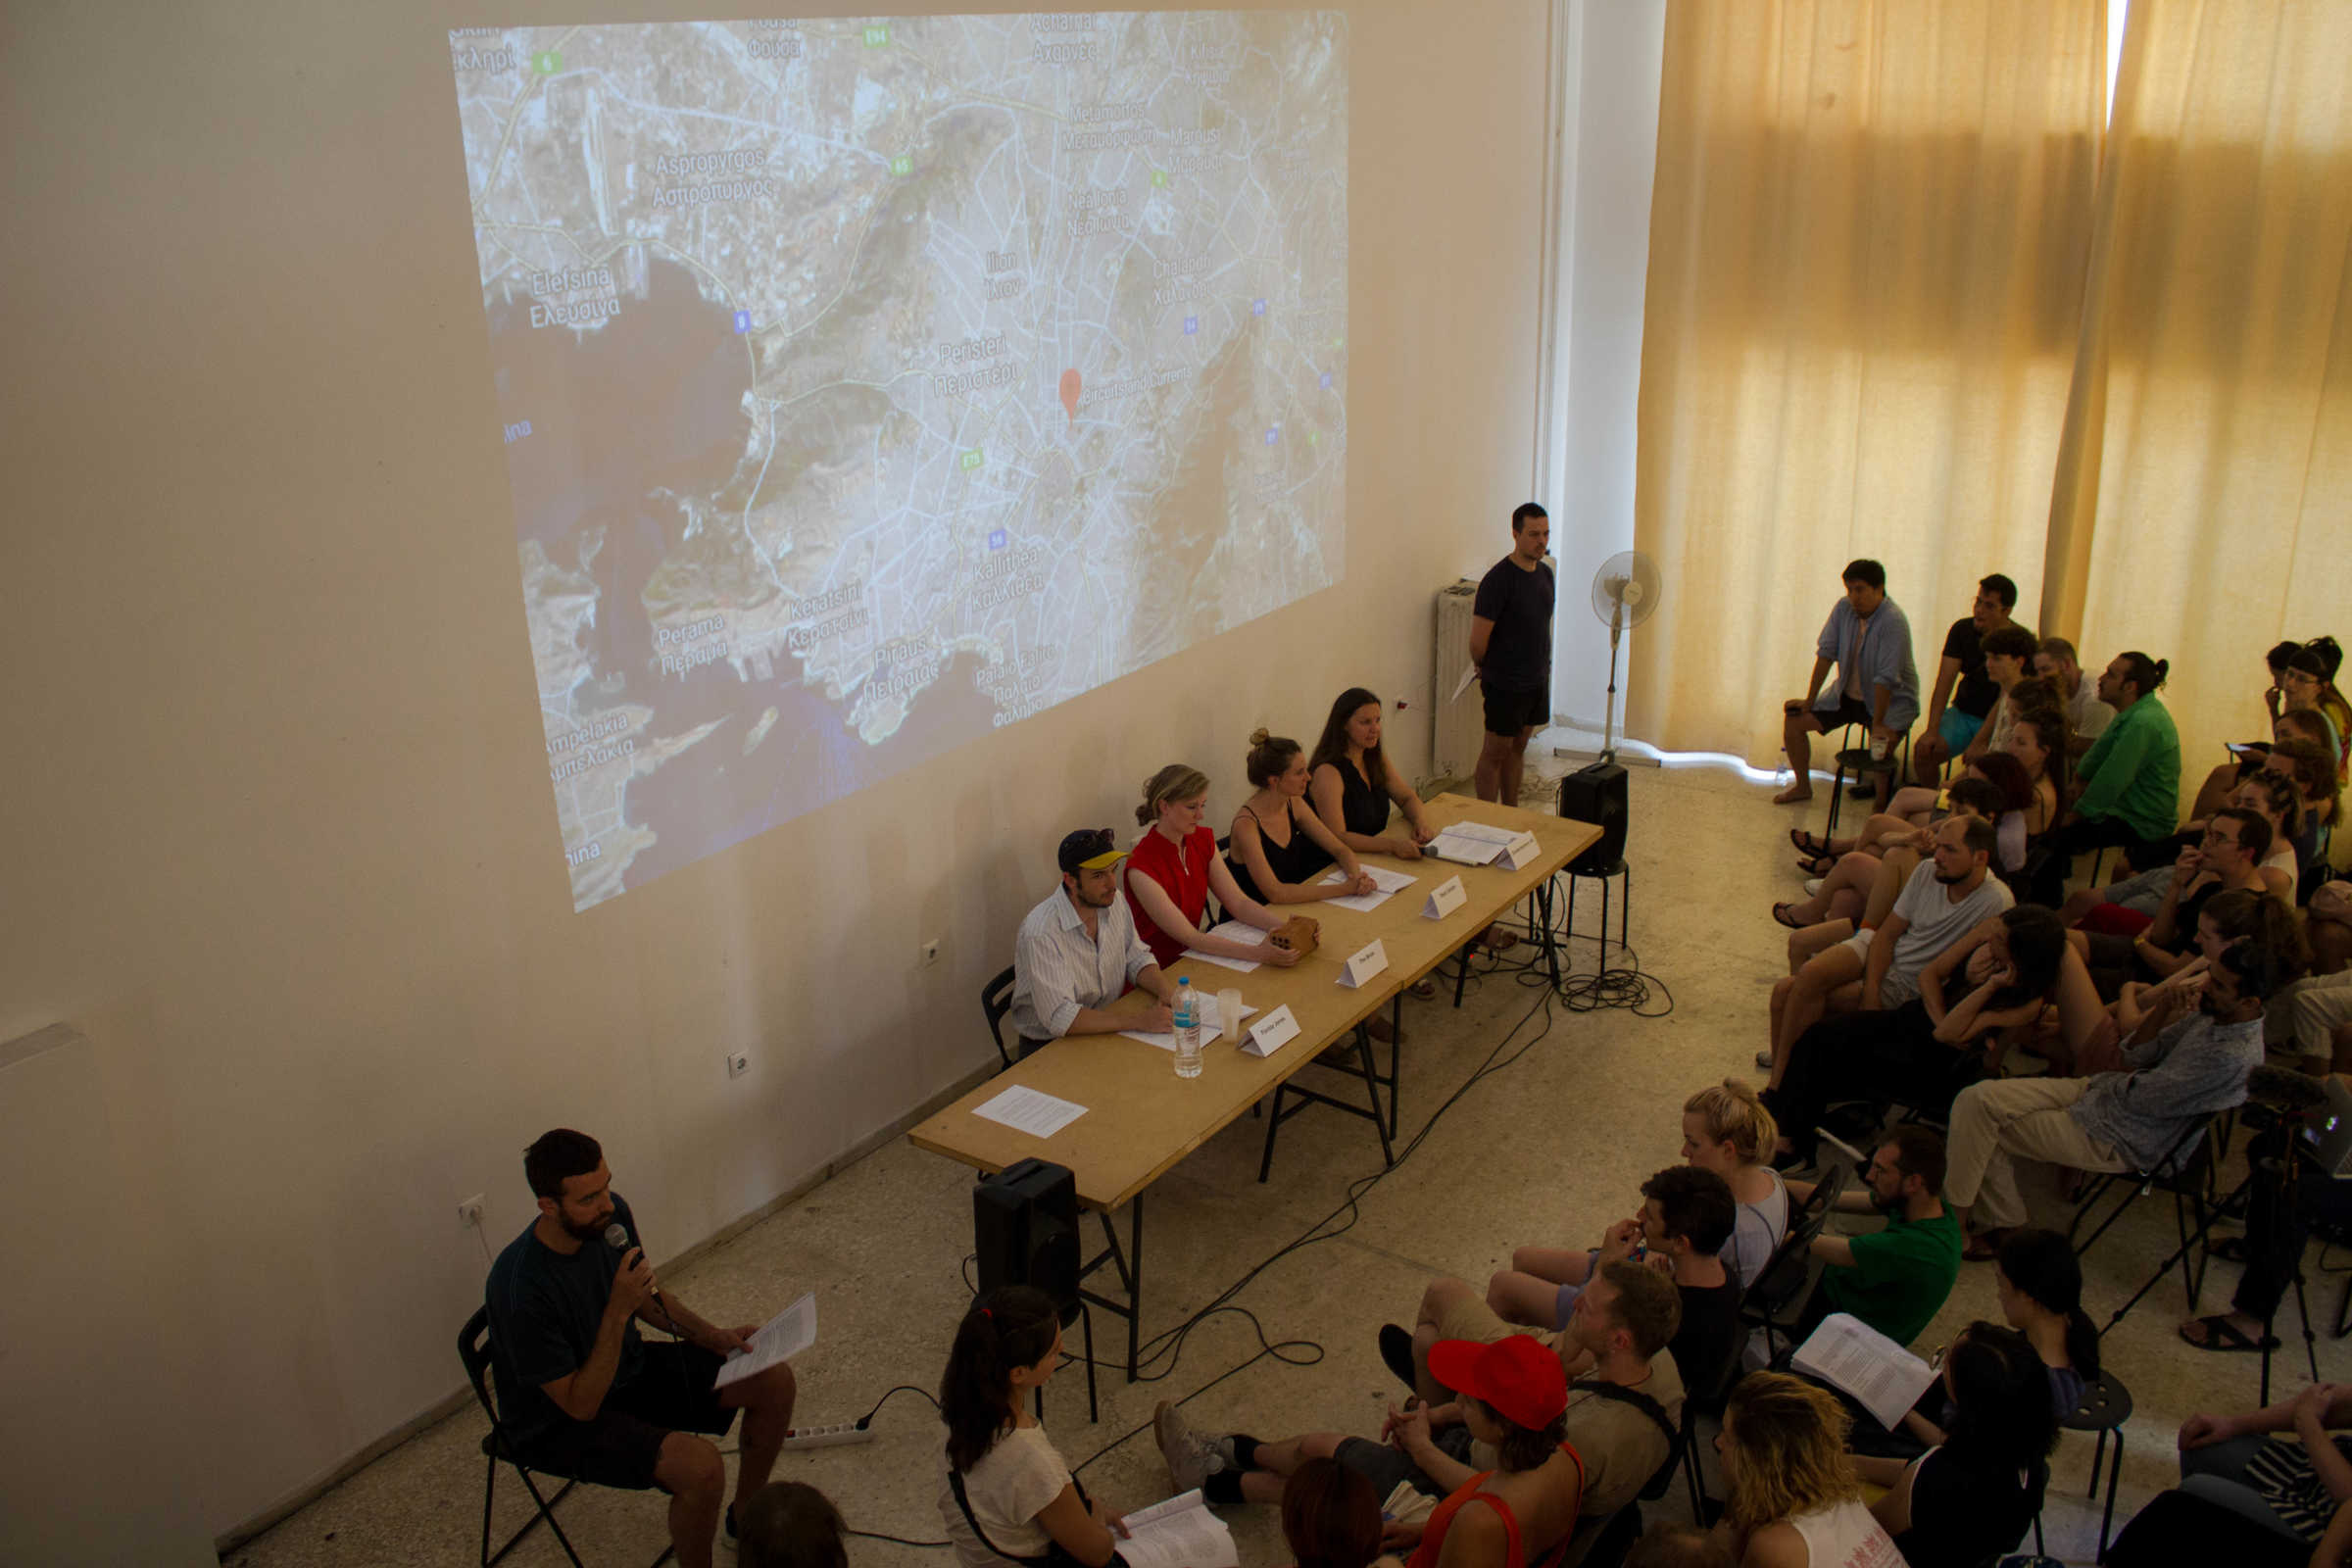 Realty - student led assembly at Circuits and Currents. DAI's COOP SUMMIT in Athens.May/June 2018.